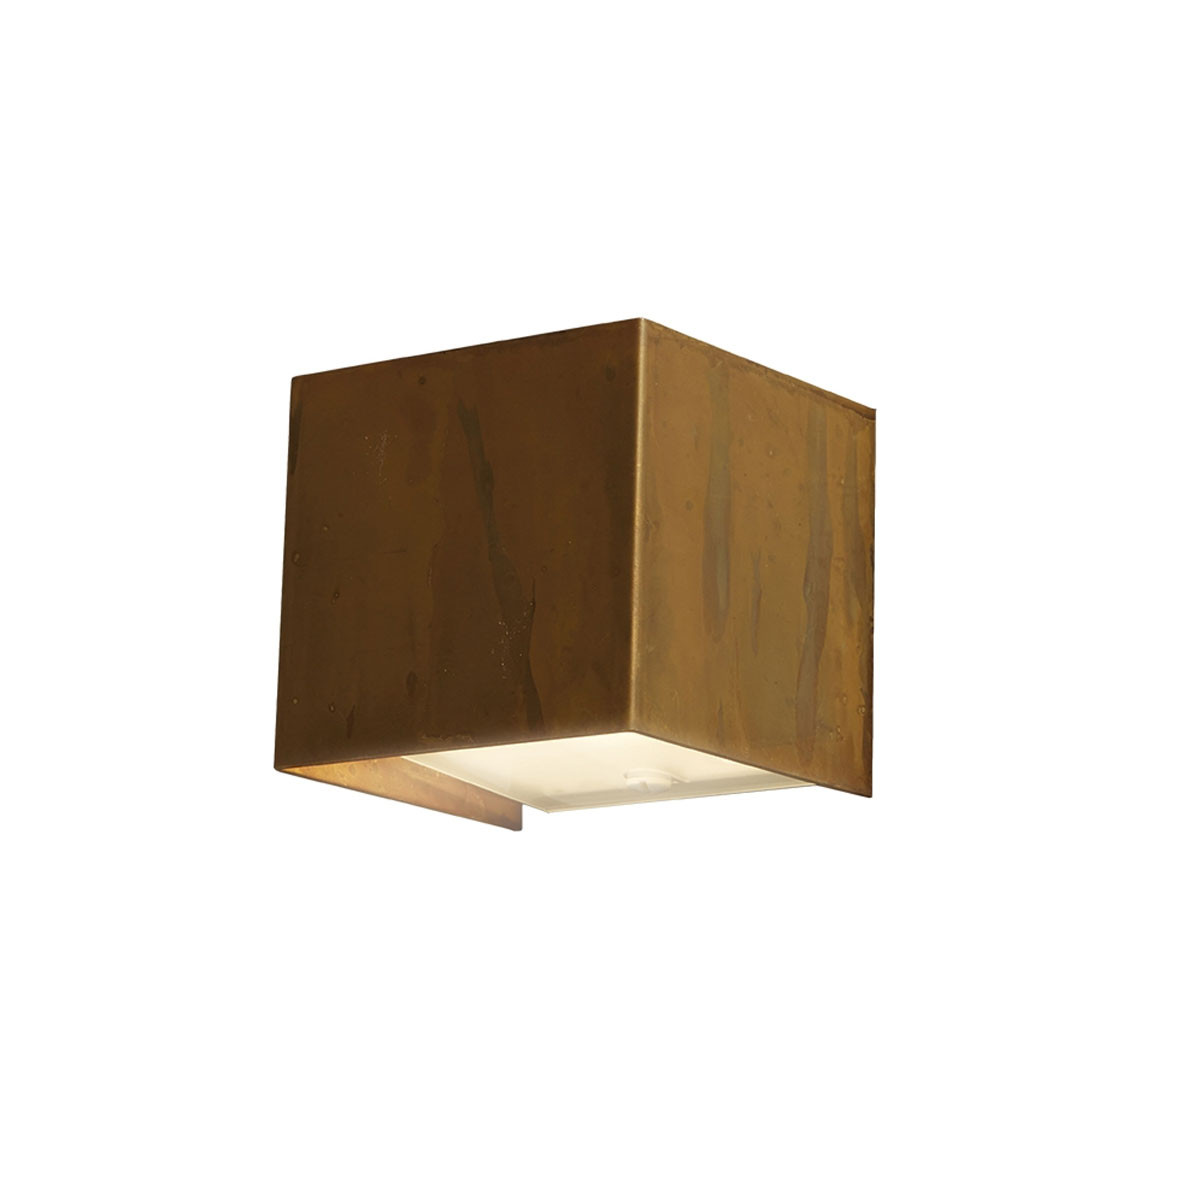 Gibas LOLA Wall Light - Small/Square - Distressed Brass